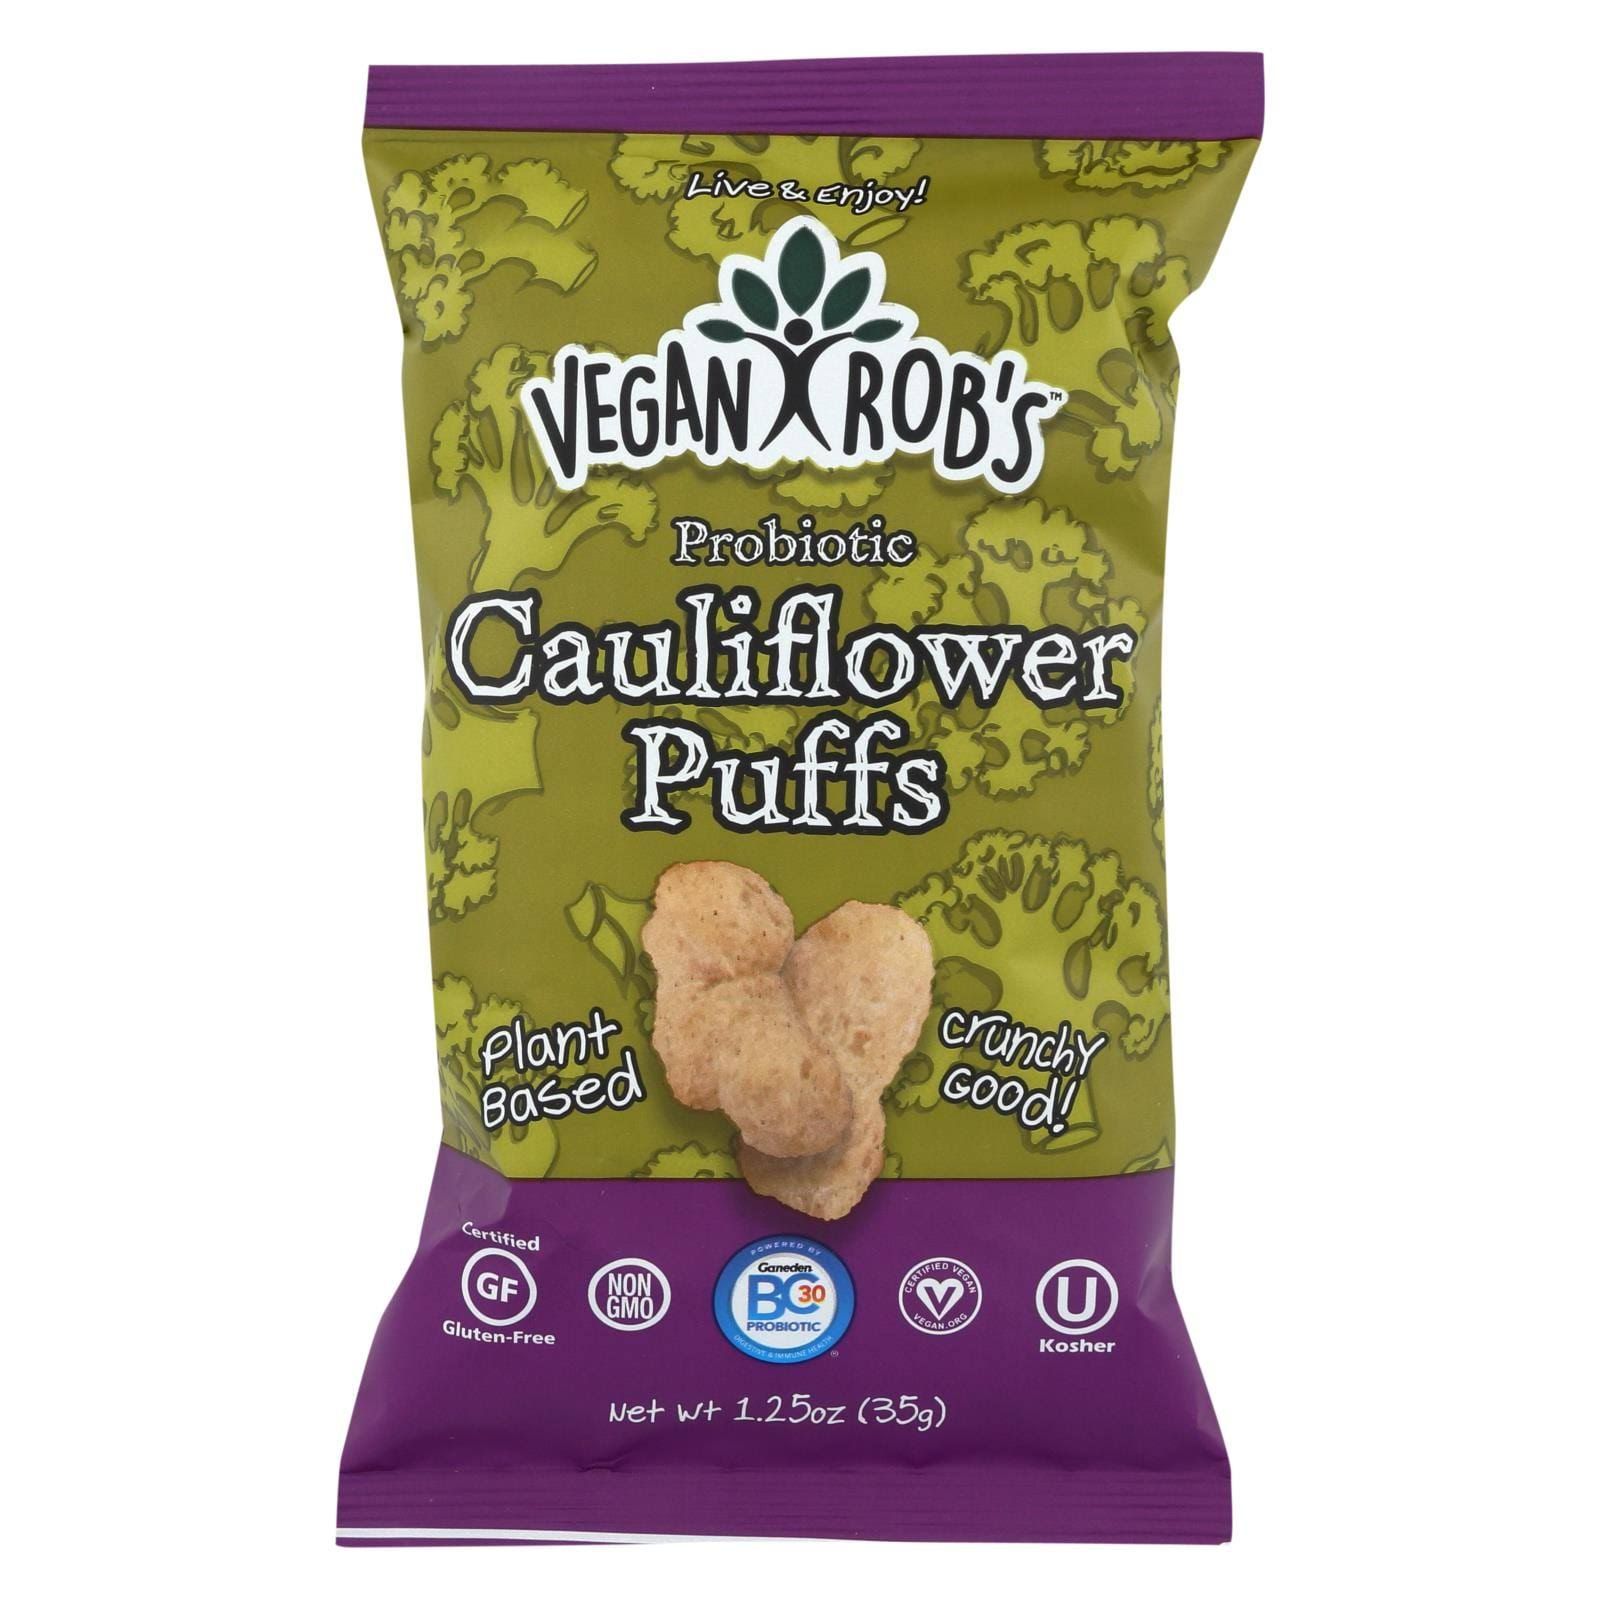 Vegan Rob's Cauliflower Puffs - 1.25oz, 12ct